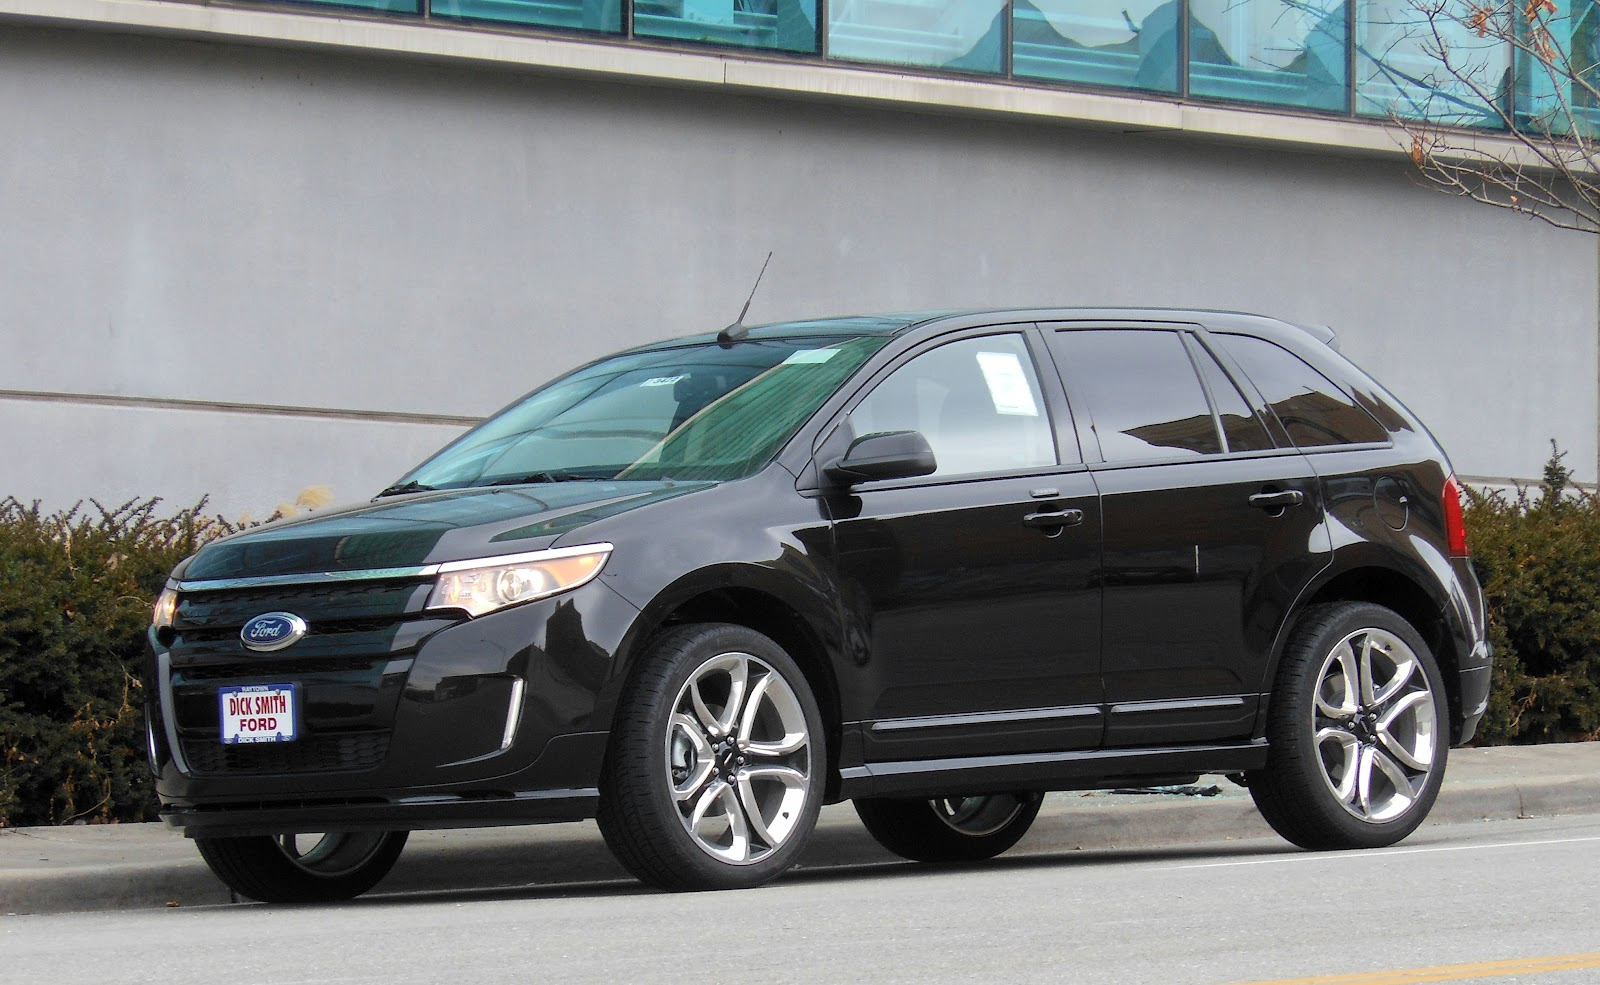 2012 ford edge image 15